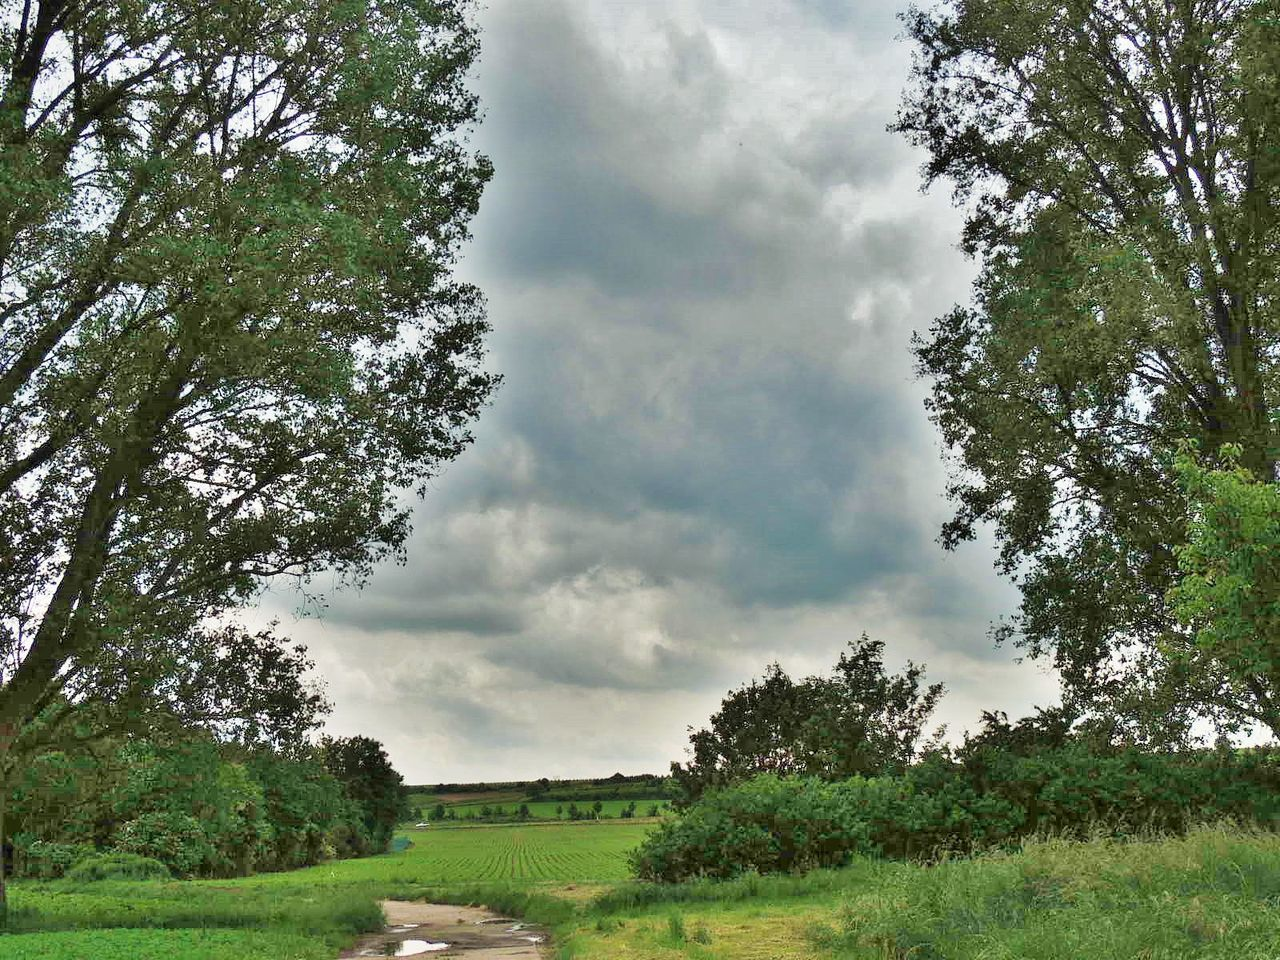 tree, nature, field, growth, day, cloud - sky, sky, green color, beauty in nature, grass, no people, outdoors, landscape, tranquility, scenics